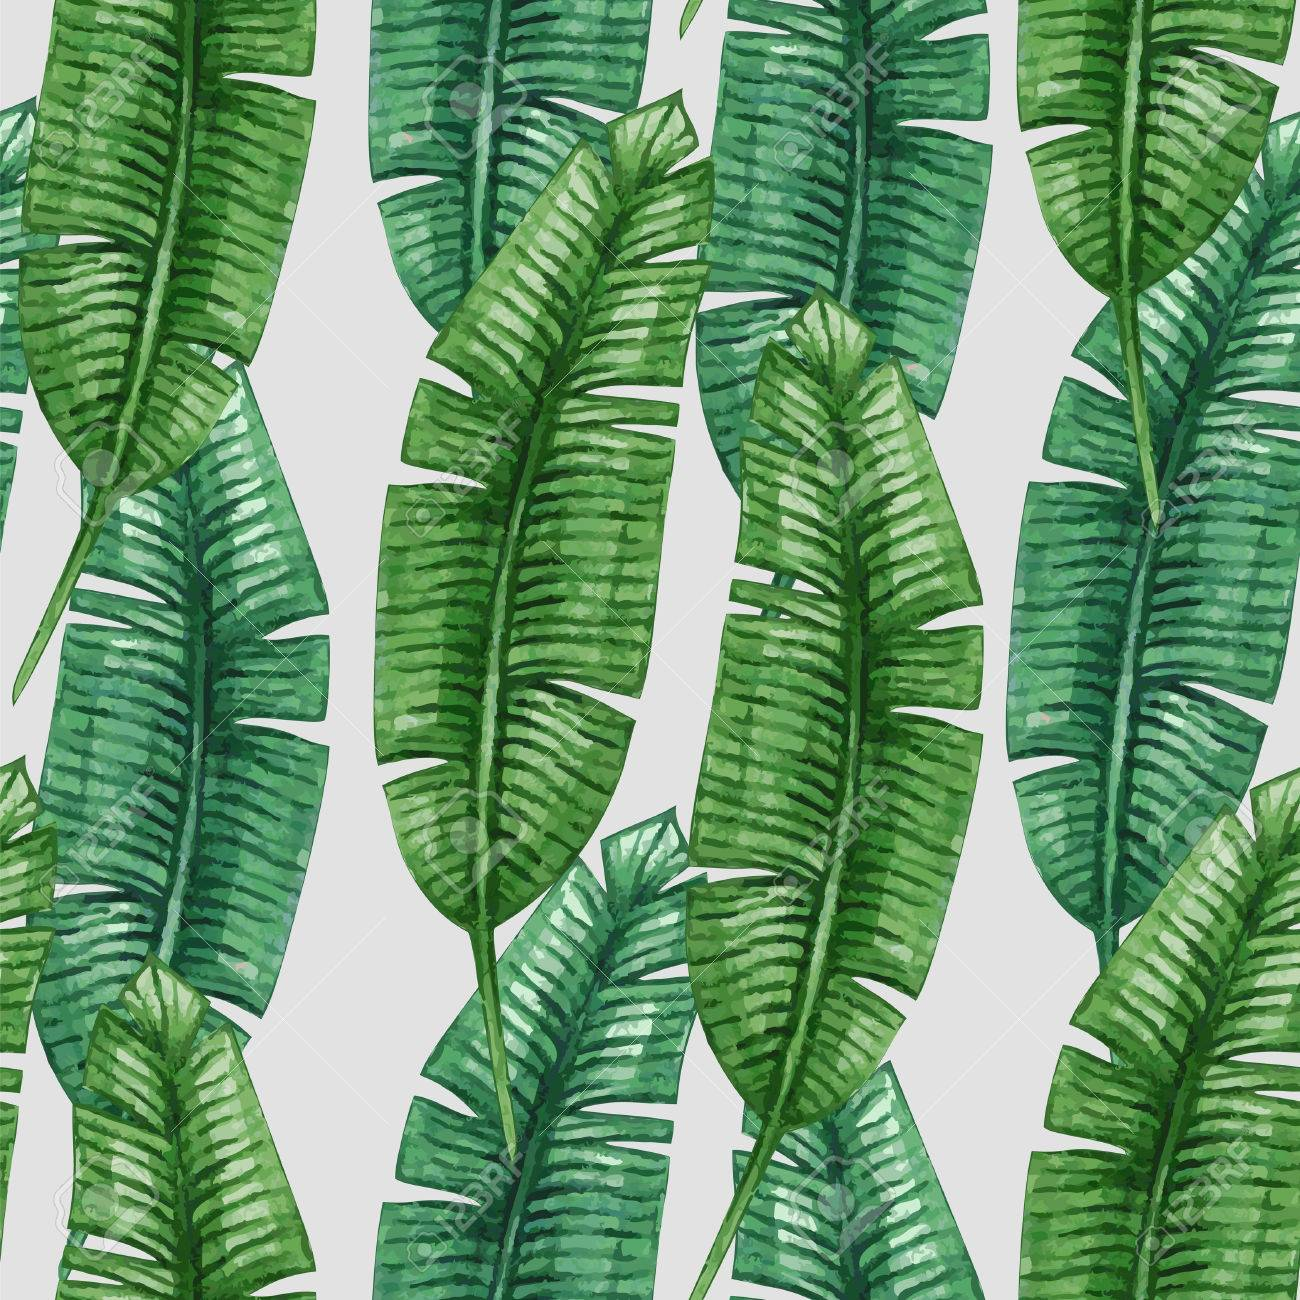 Watercolor tropical palm leaves seamless pattern. Vector illustration. - 52548316